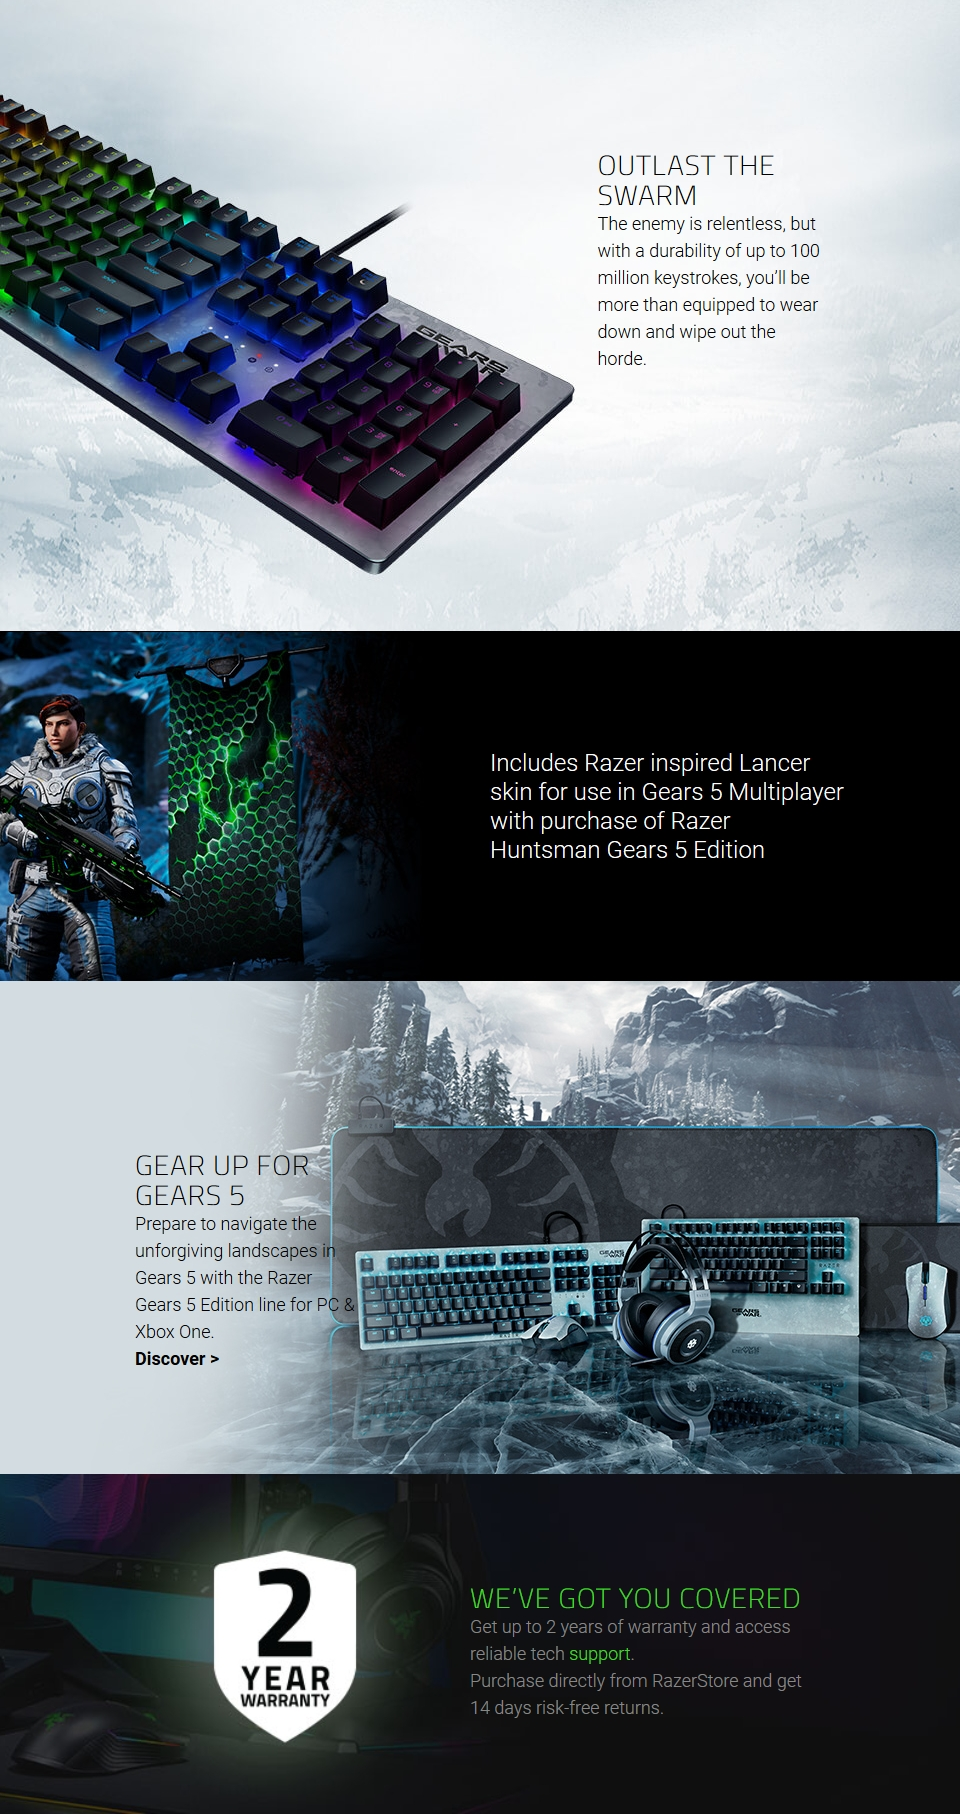 Razer Huntsman Gears 5 Edition Opto-Mechanical Gaming Keyboard features 2